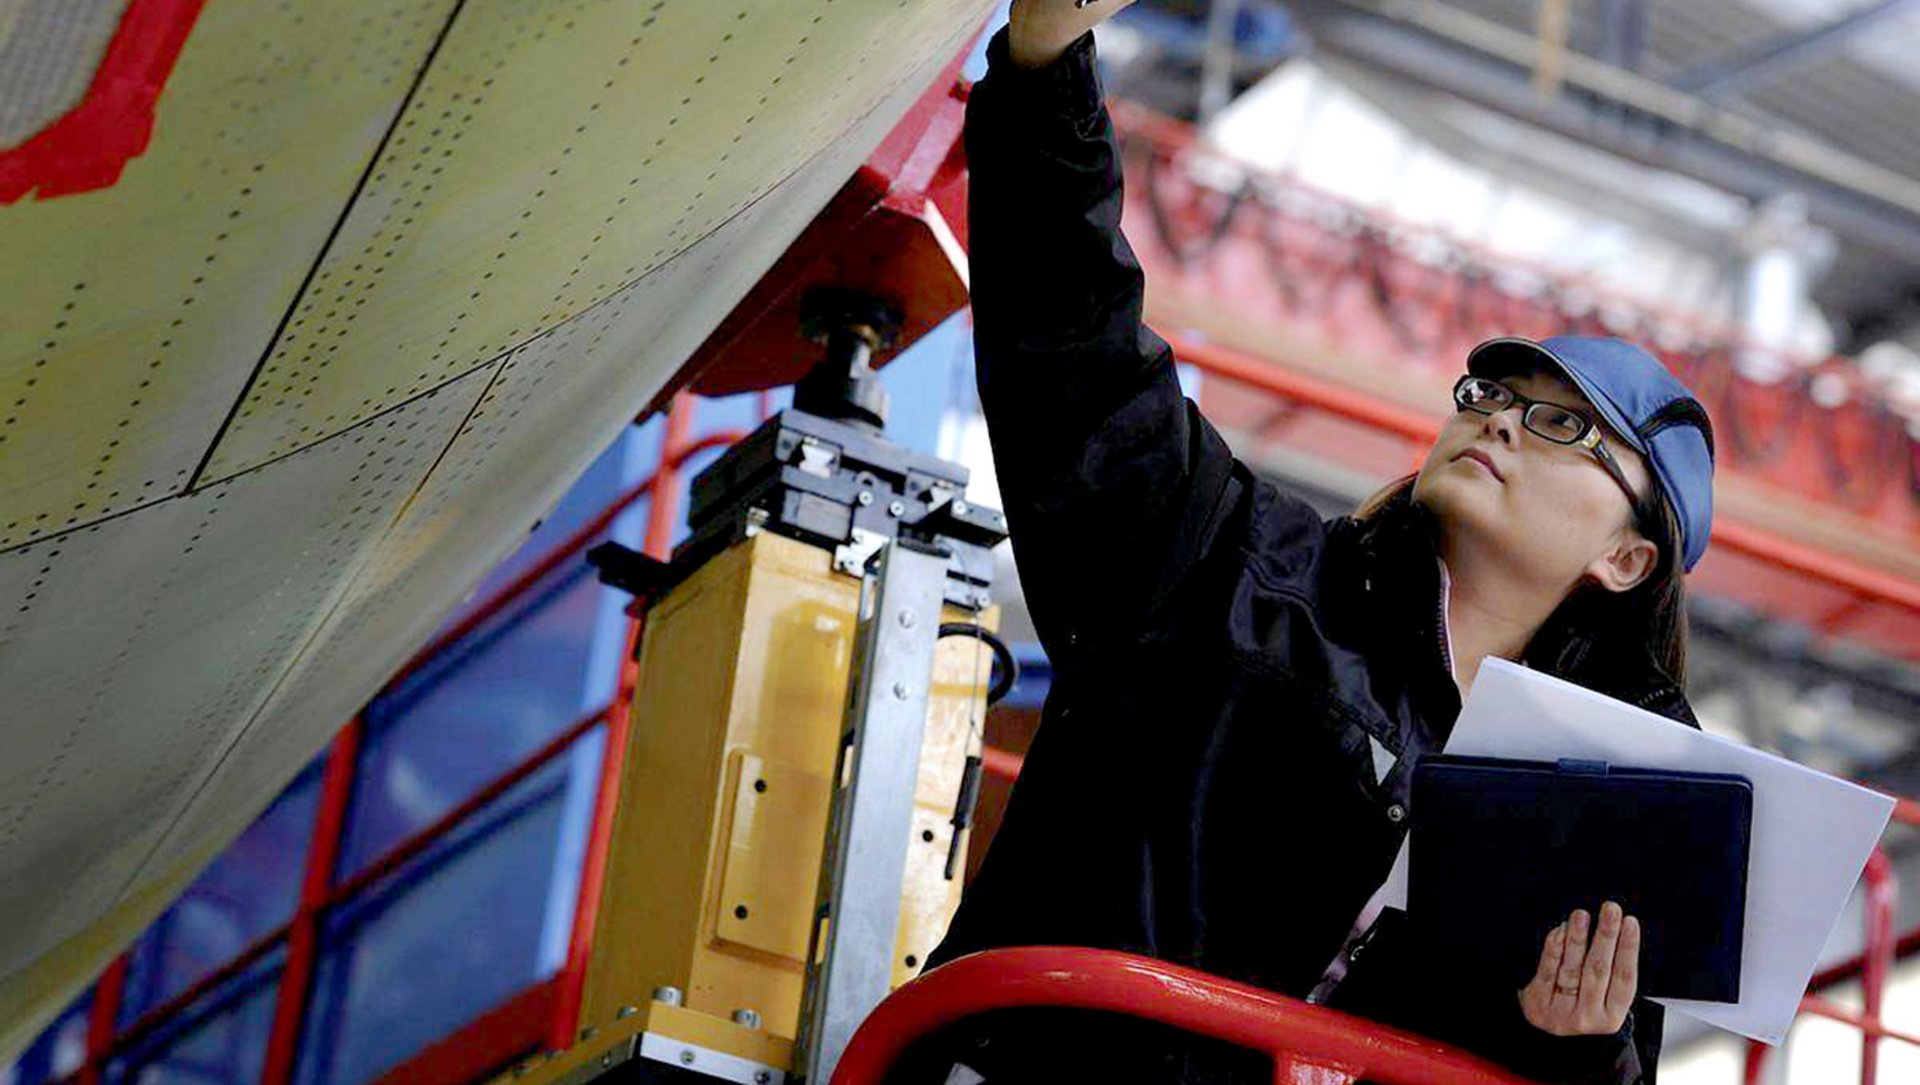 Airbus supports women's empowerment and equality